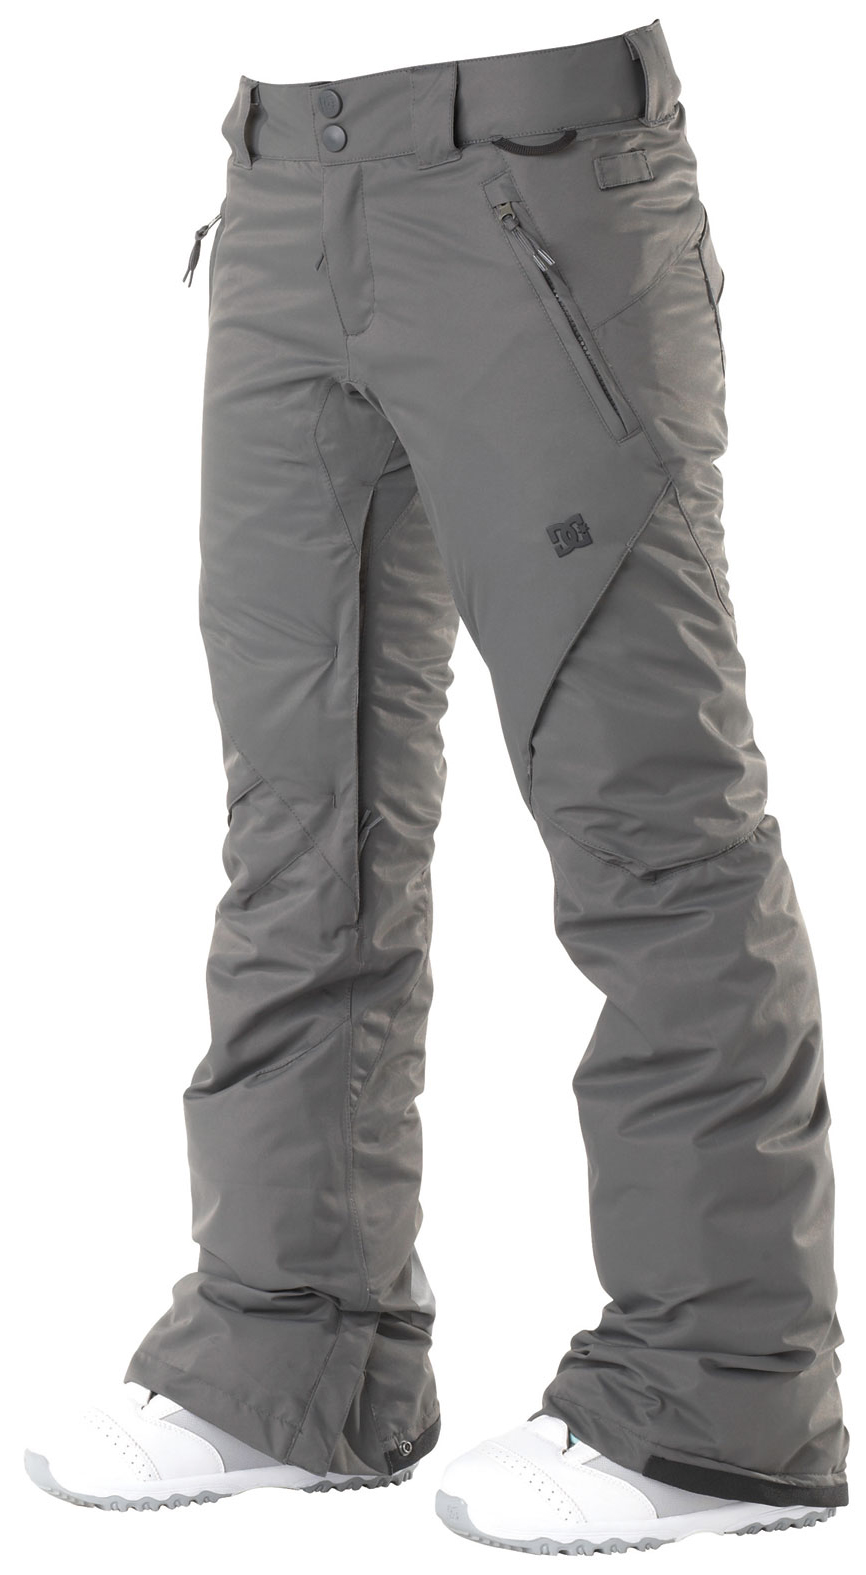 Snowboard With subtle cargo pockets, clean yet modern design, the ace pant is filled with all of dc's standard features. The added insulation will keep you warm in the coldest of climates. Available in both standard and tailored fits.Key Features of the DC Ace S Snowboard Pants: 5,000mm waterproof 5,000g breathability Fit: skinny 100% polyester micro twill midweight Critically taped seams 40g polyinsulation Taffeta lining Mesh lined venting Shant control Boot gaiter Snapped hem boot gusset Lift pass hook - $77.95